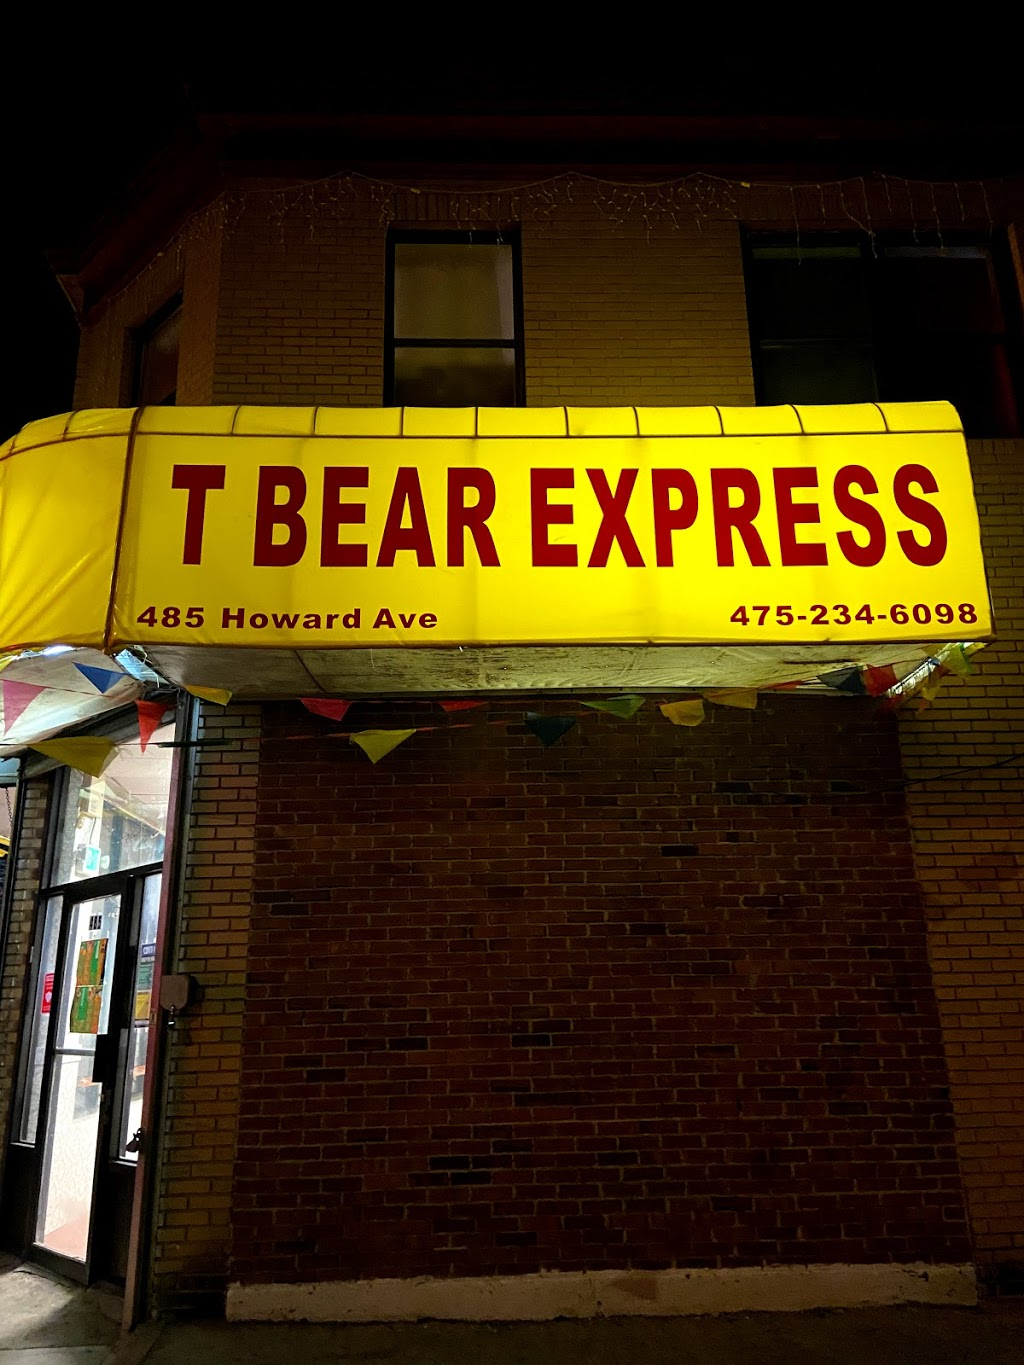 T Bear Express | restaurant | 485 Howard Ave, New Haven, CT 06519, USA | 4752346098 OR +1 475-234-6098